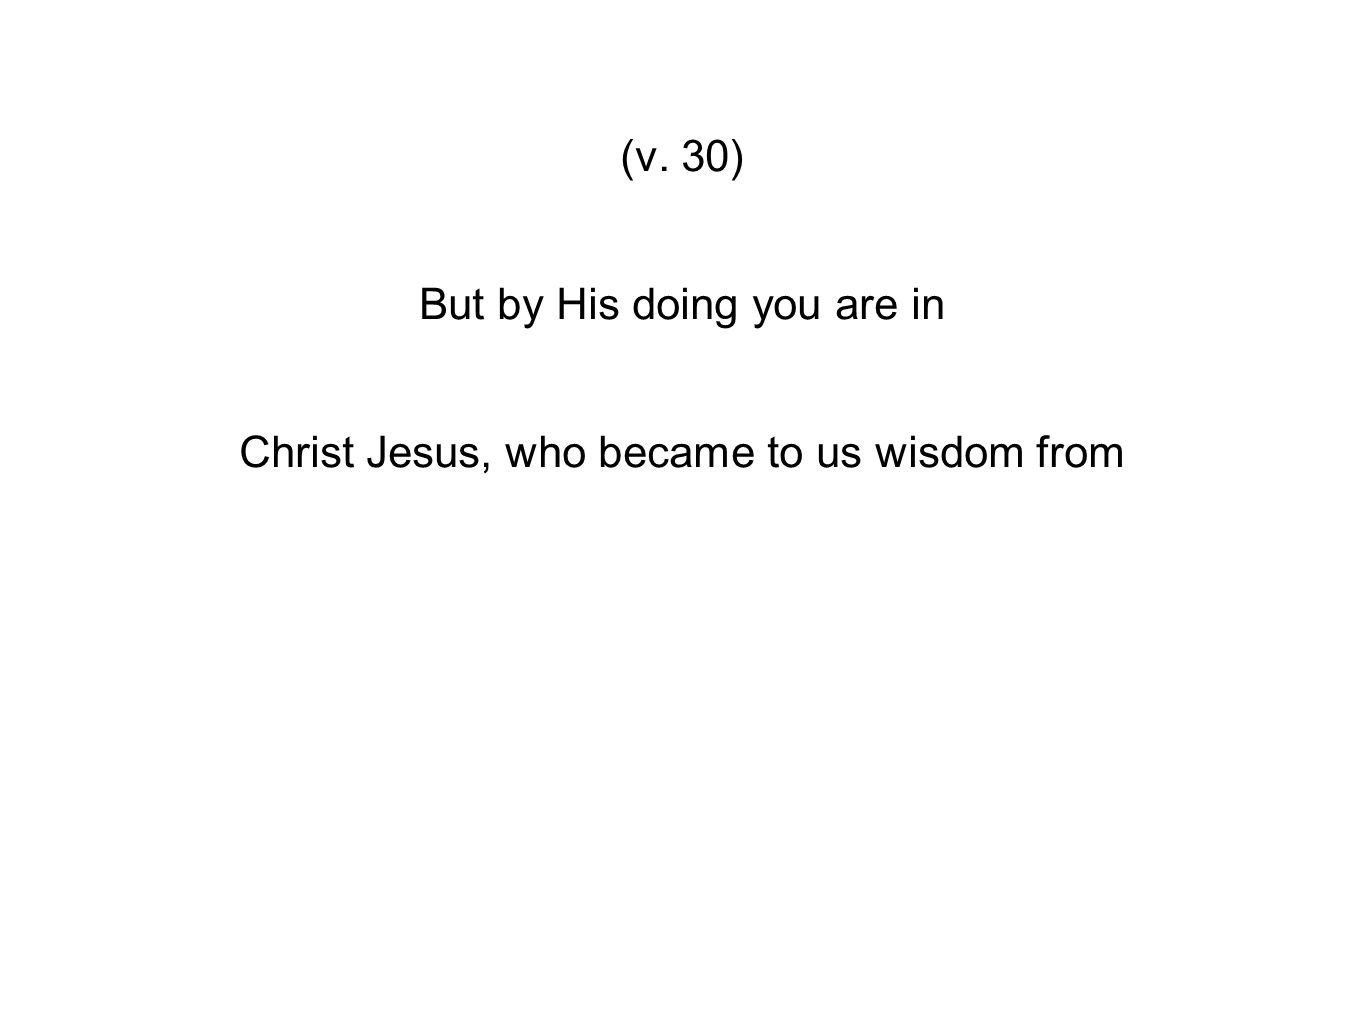 (v. 30) But by His doing you are in Christ Jesus, who became to us wisdom from